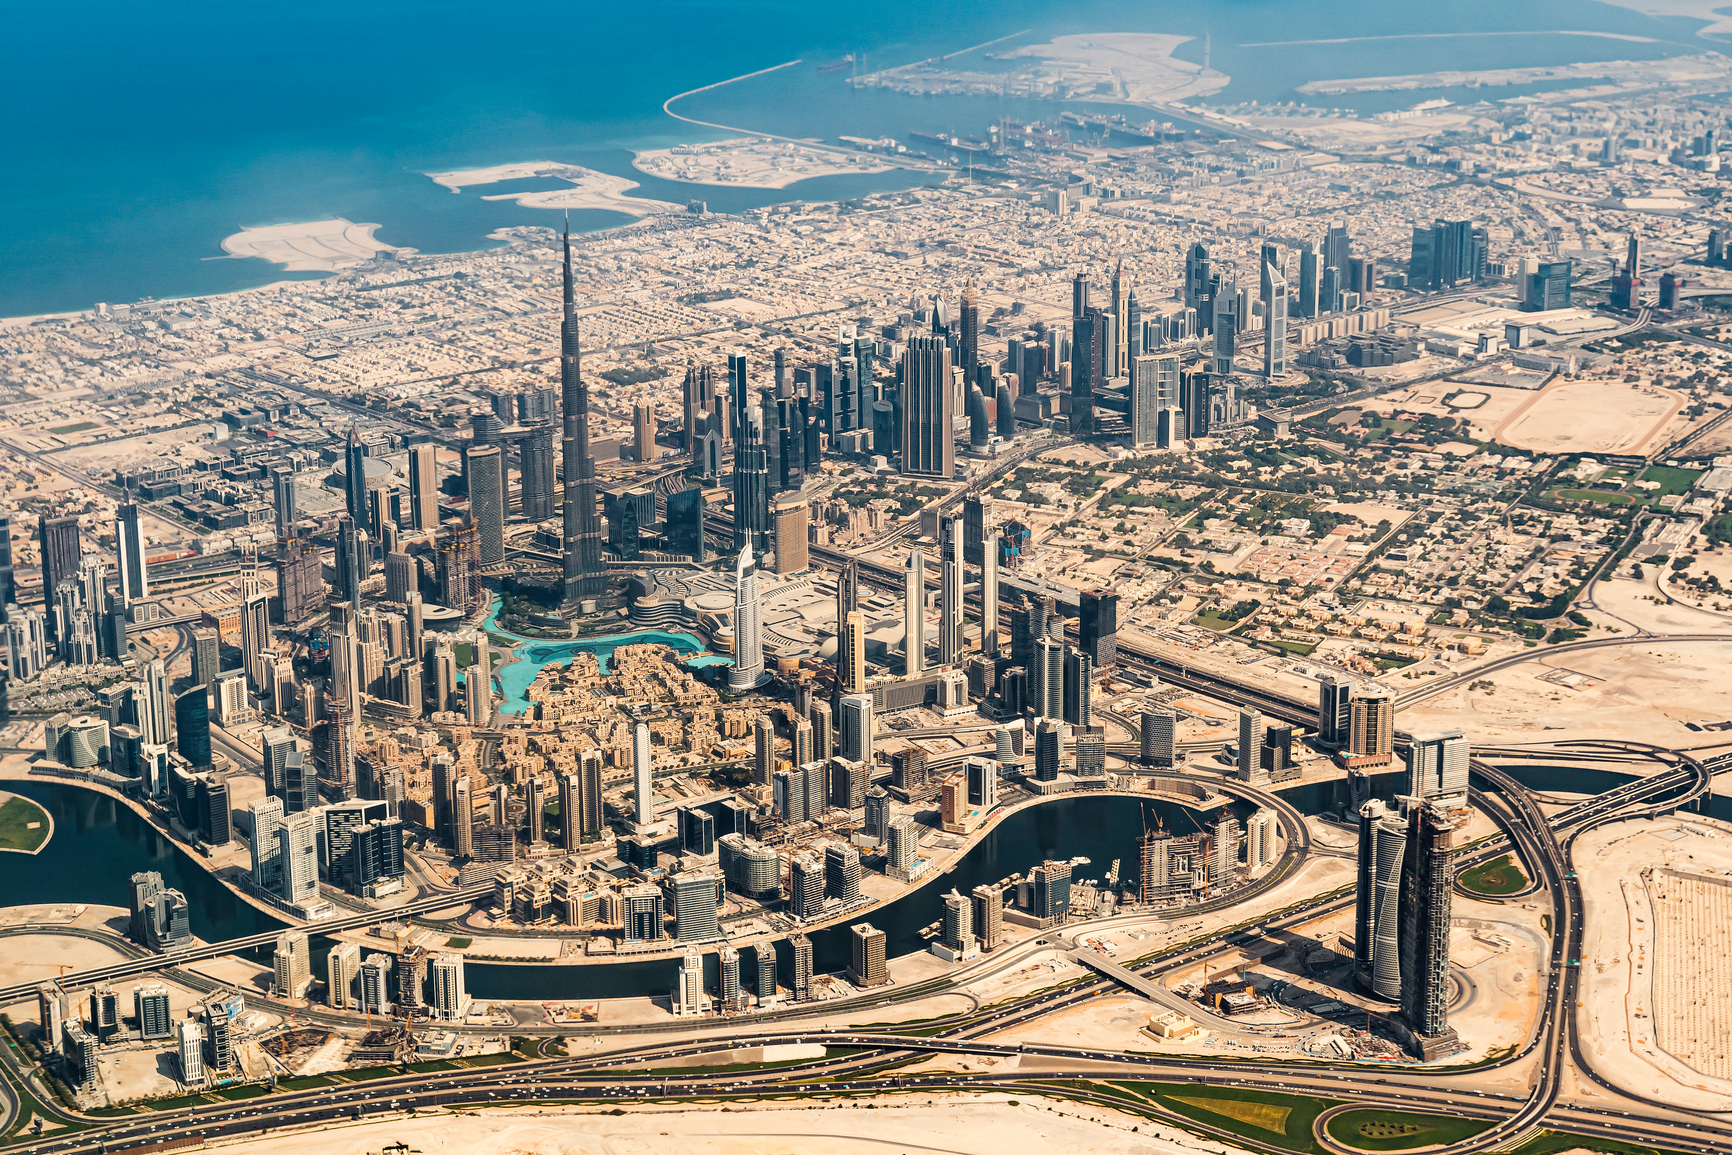 Aerial View Of Dubai, United Arab Emirates.